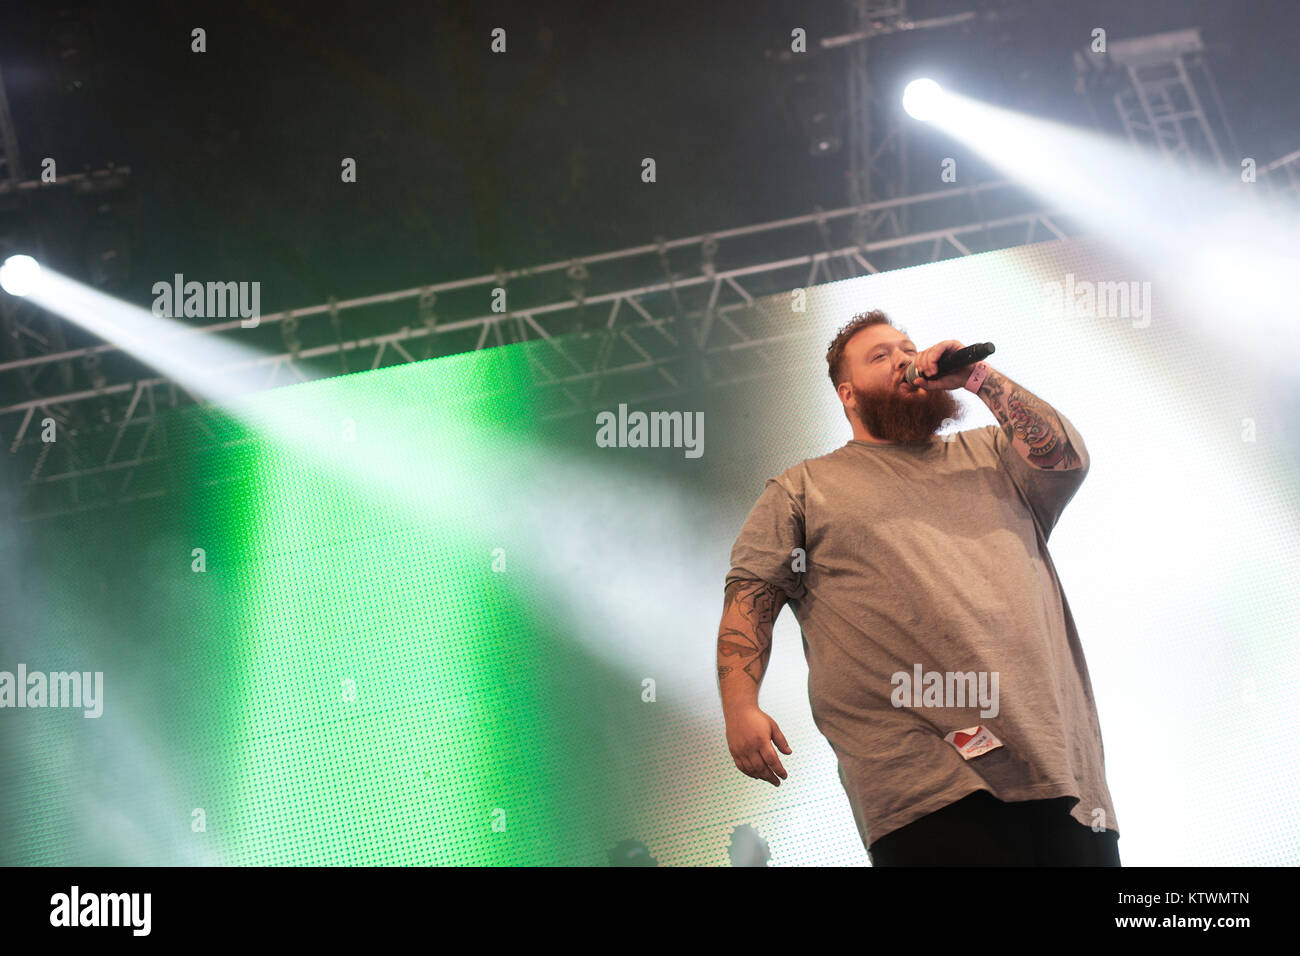 The American rapper Action Bronson is a big man and a well-respected poet in American hip hop. Denmark 2013. - Stock Image